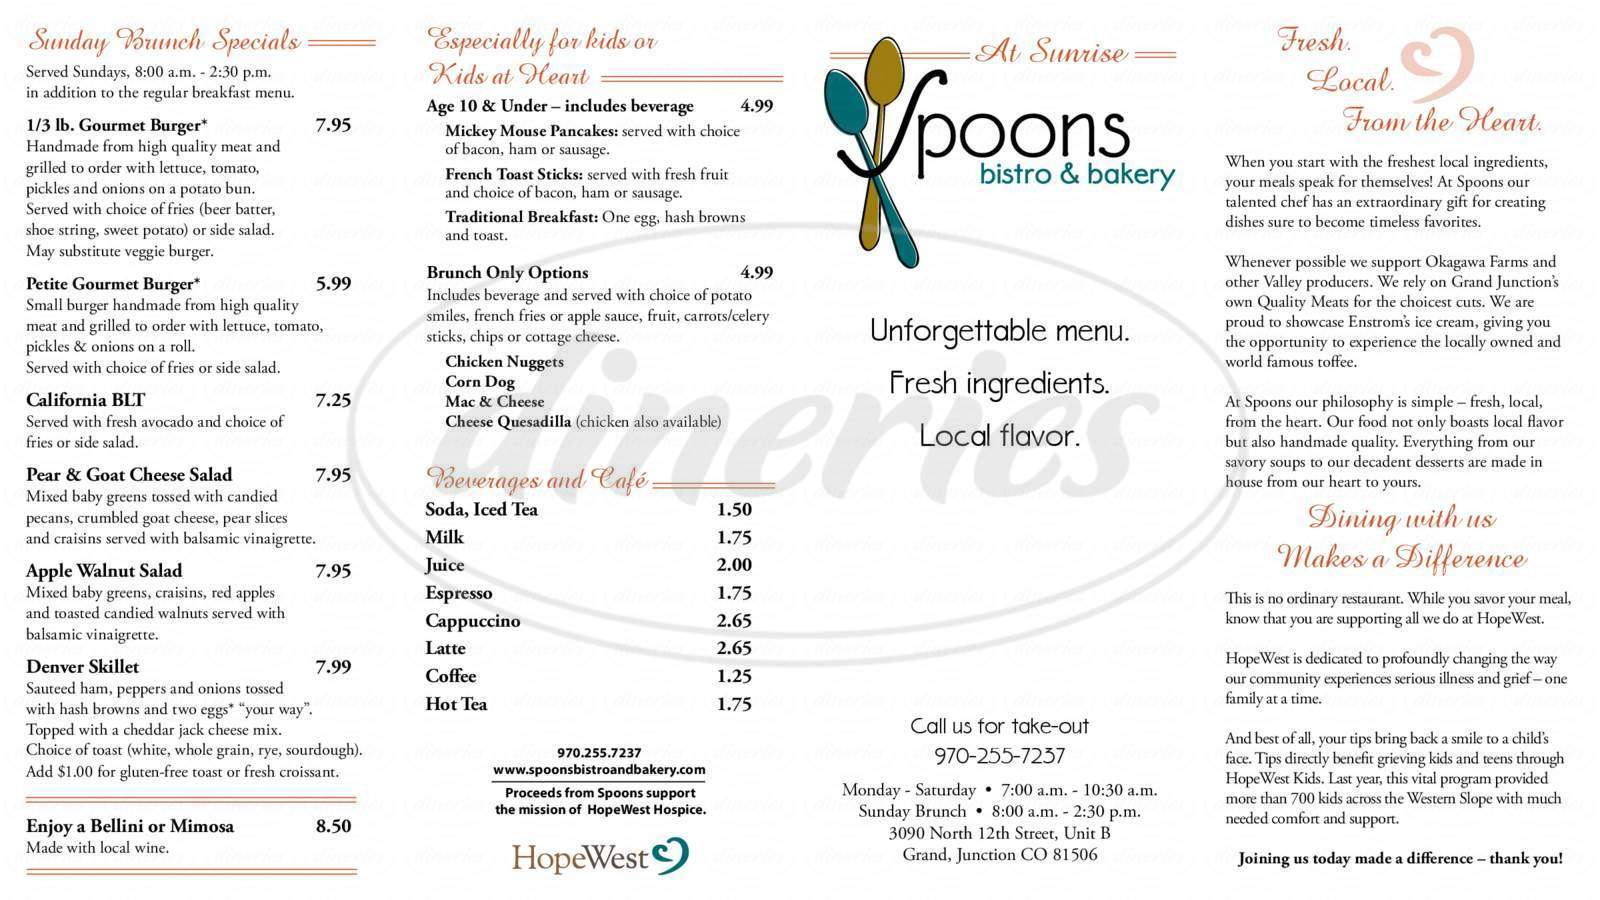 menu for Spoons Bistro & Bakery